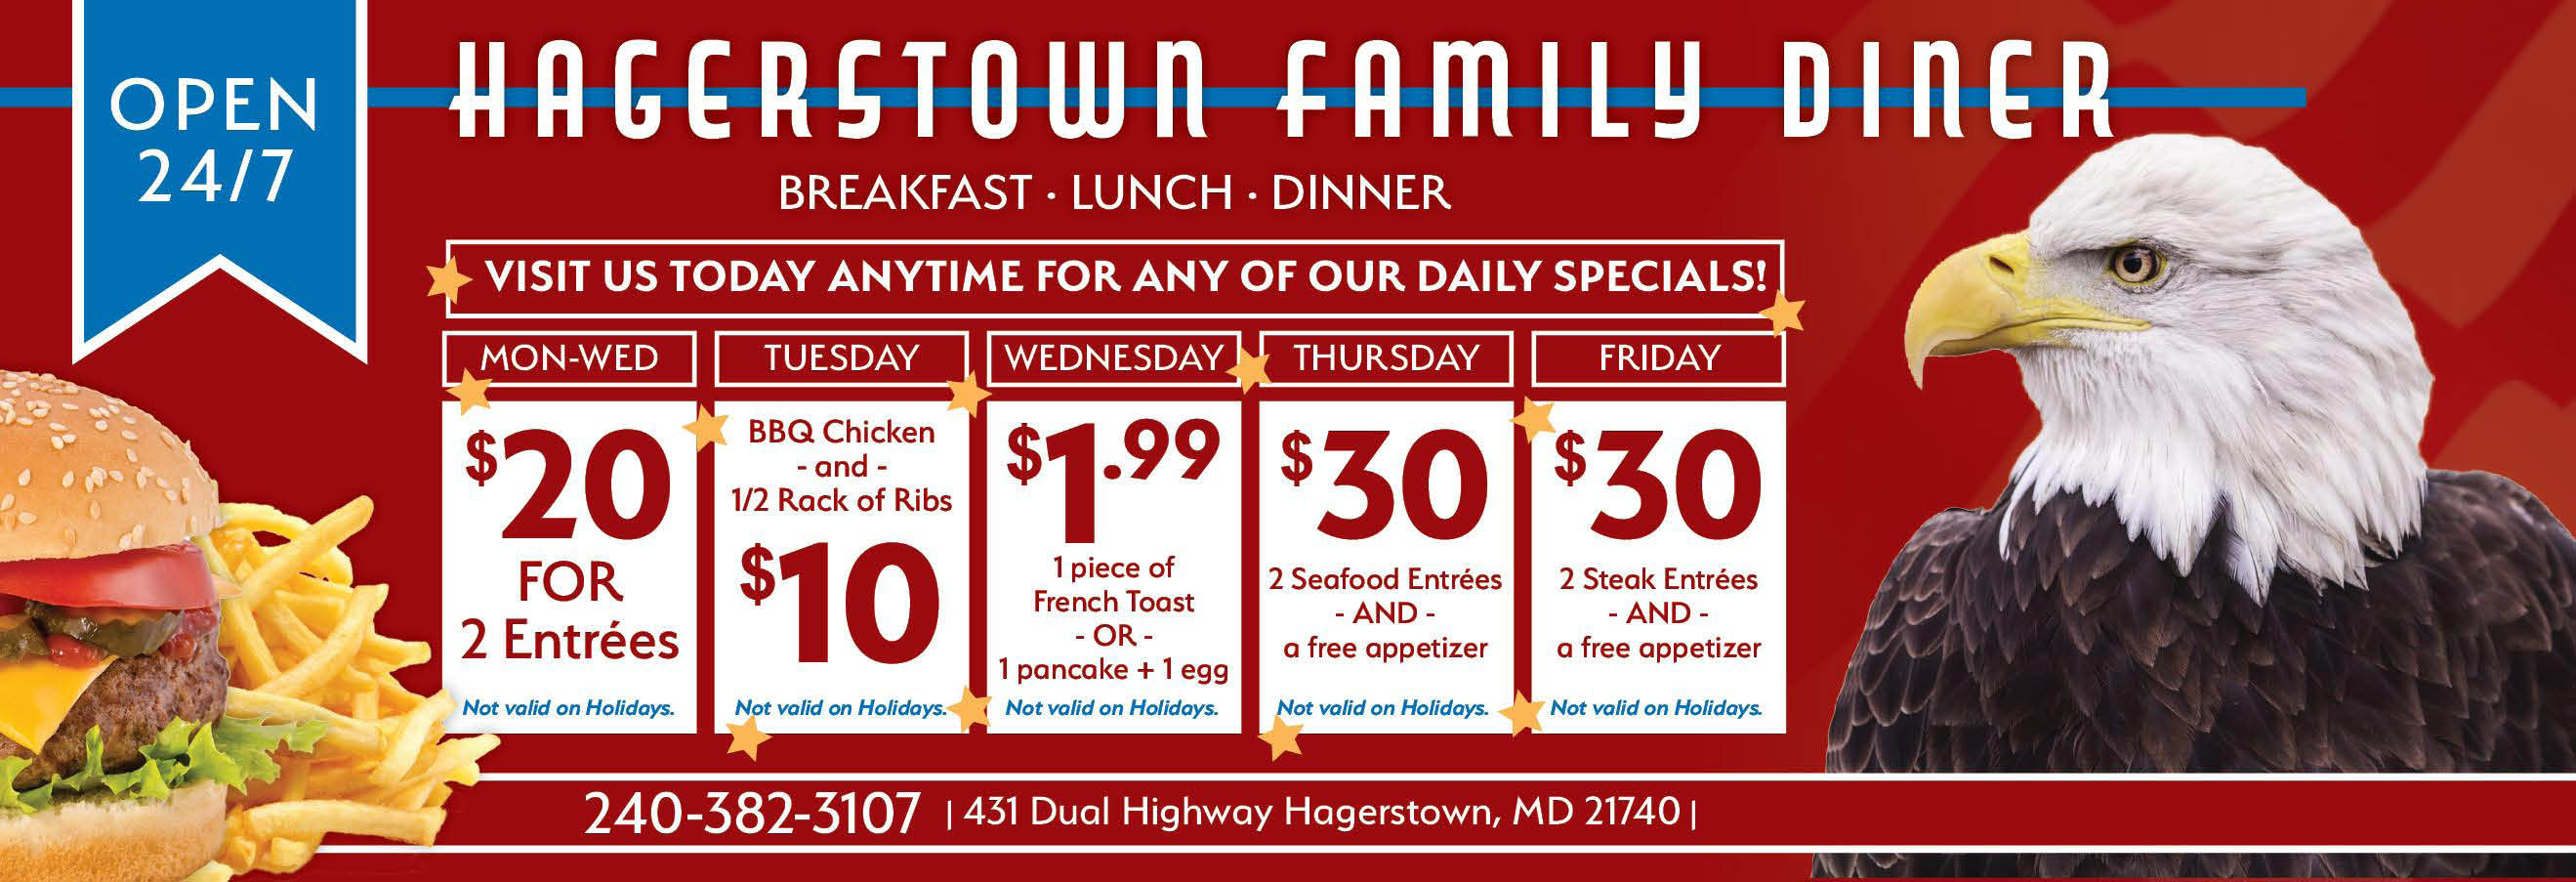 Diner, Lunch, Dinner, Food, Dive, Soups, Sandwiches, Burgers, Family, Hagerstown, Pie, Breakfast